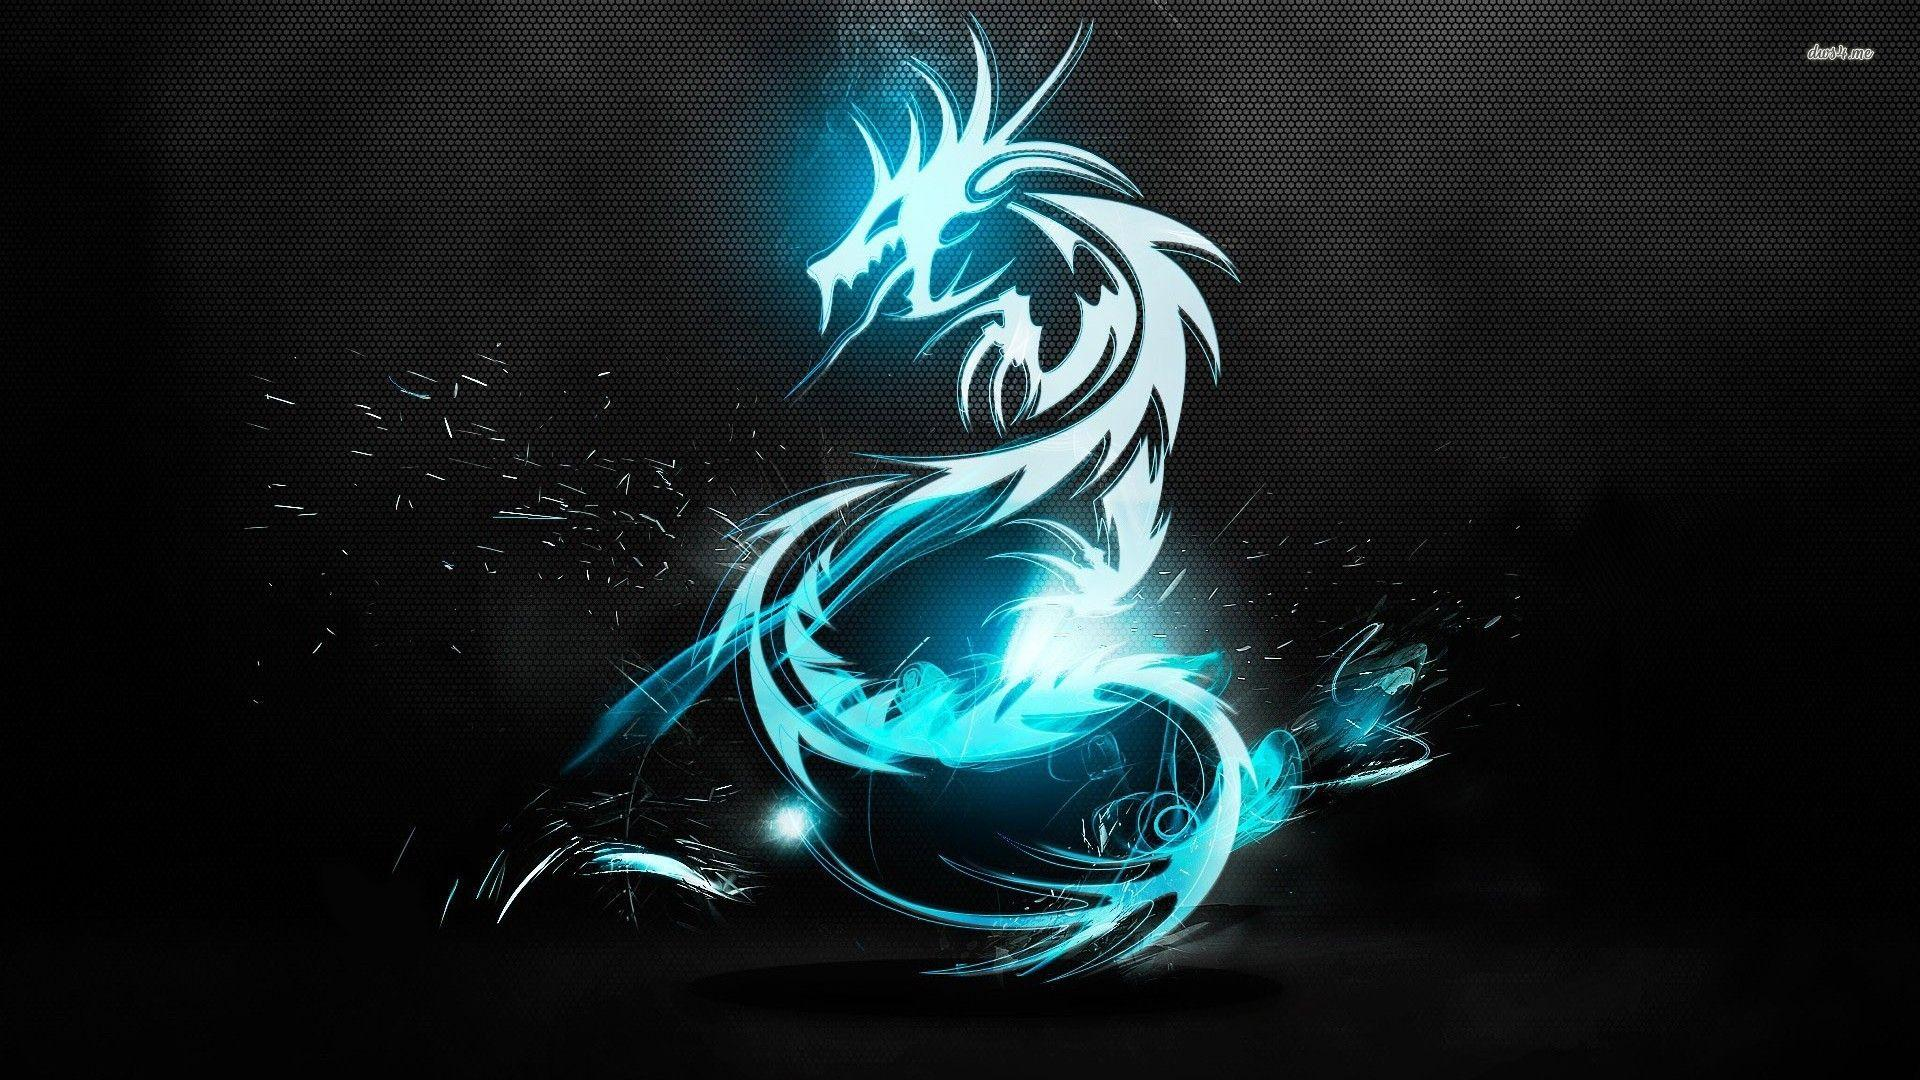 Wallpapers For Dragon Backgrounds Hd